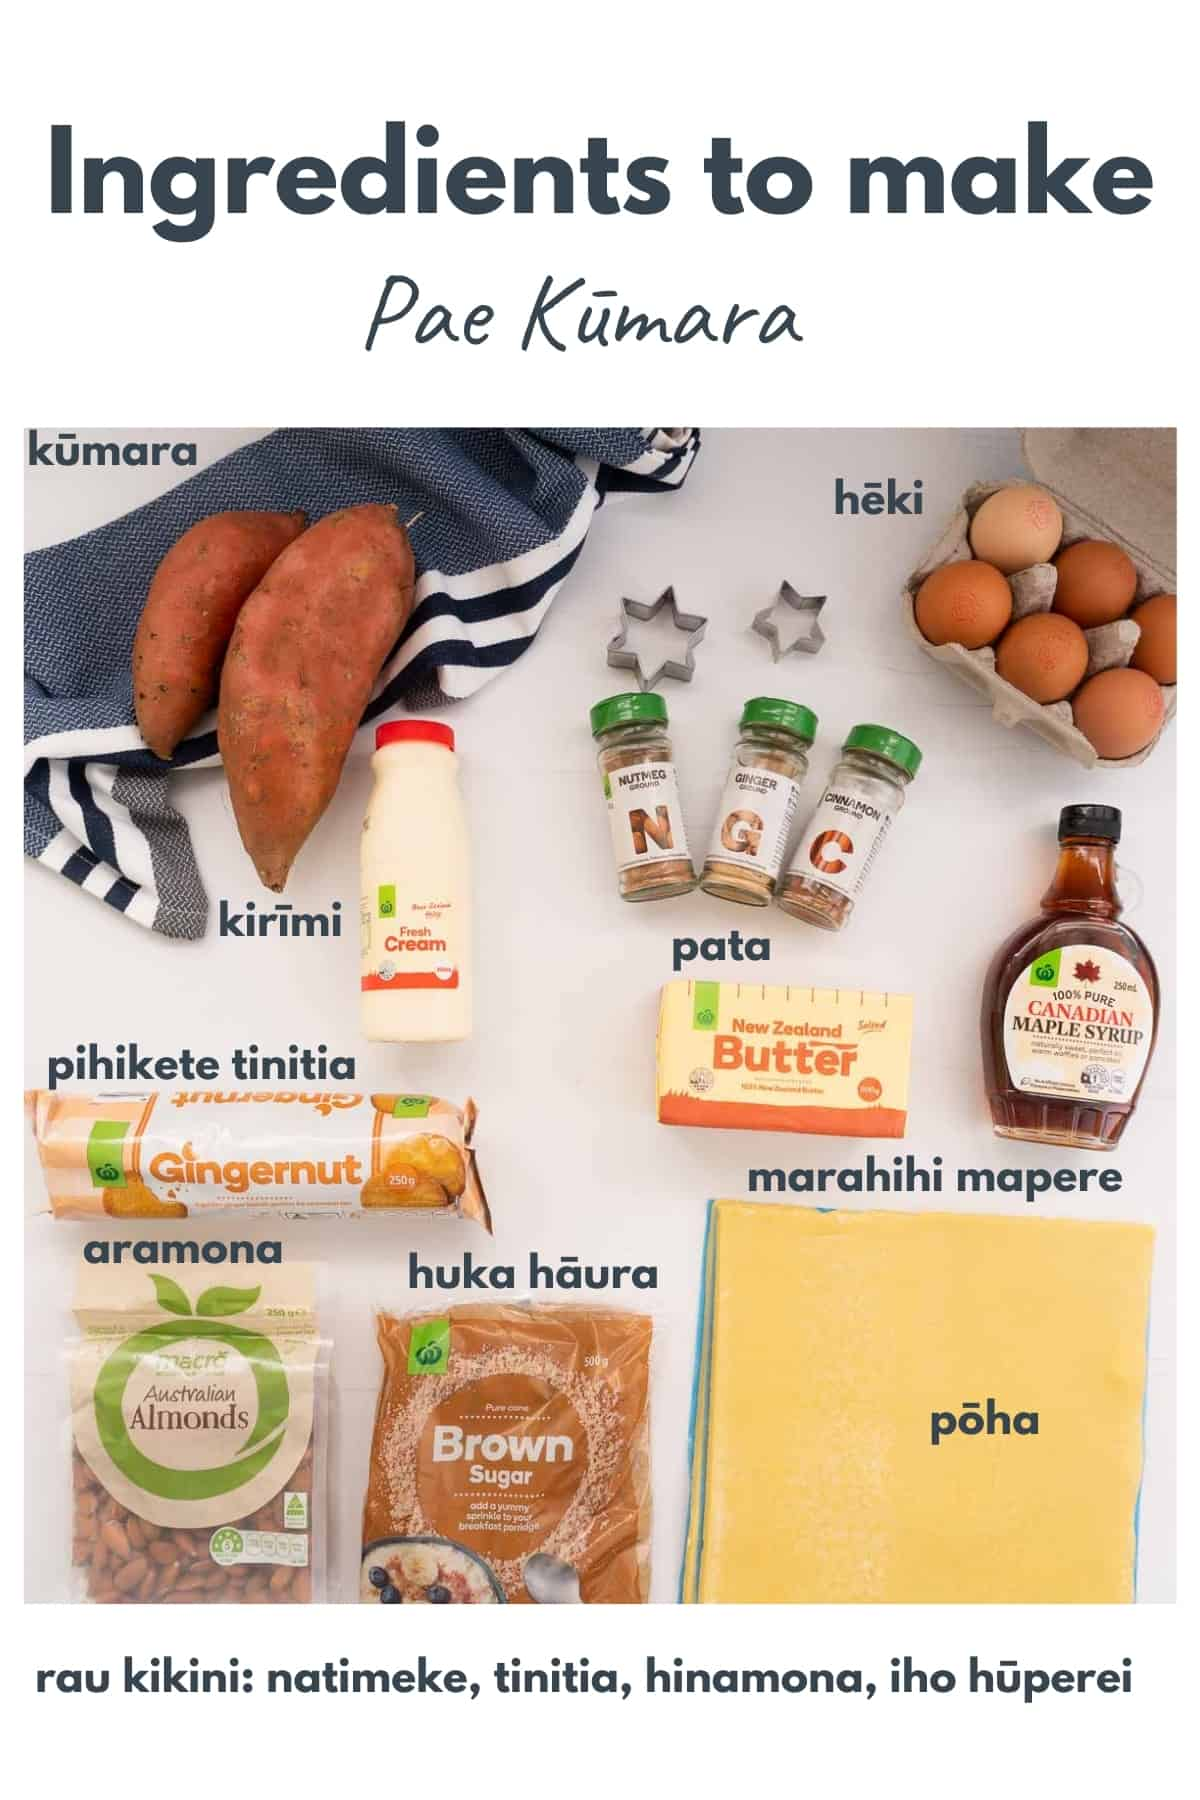 The ingredients to make sweet kumara pie with ingredients labeled in maori.